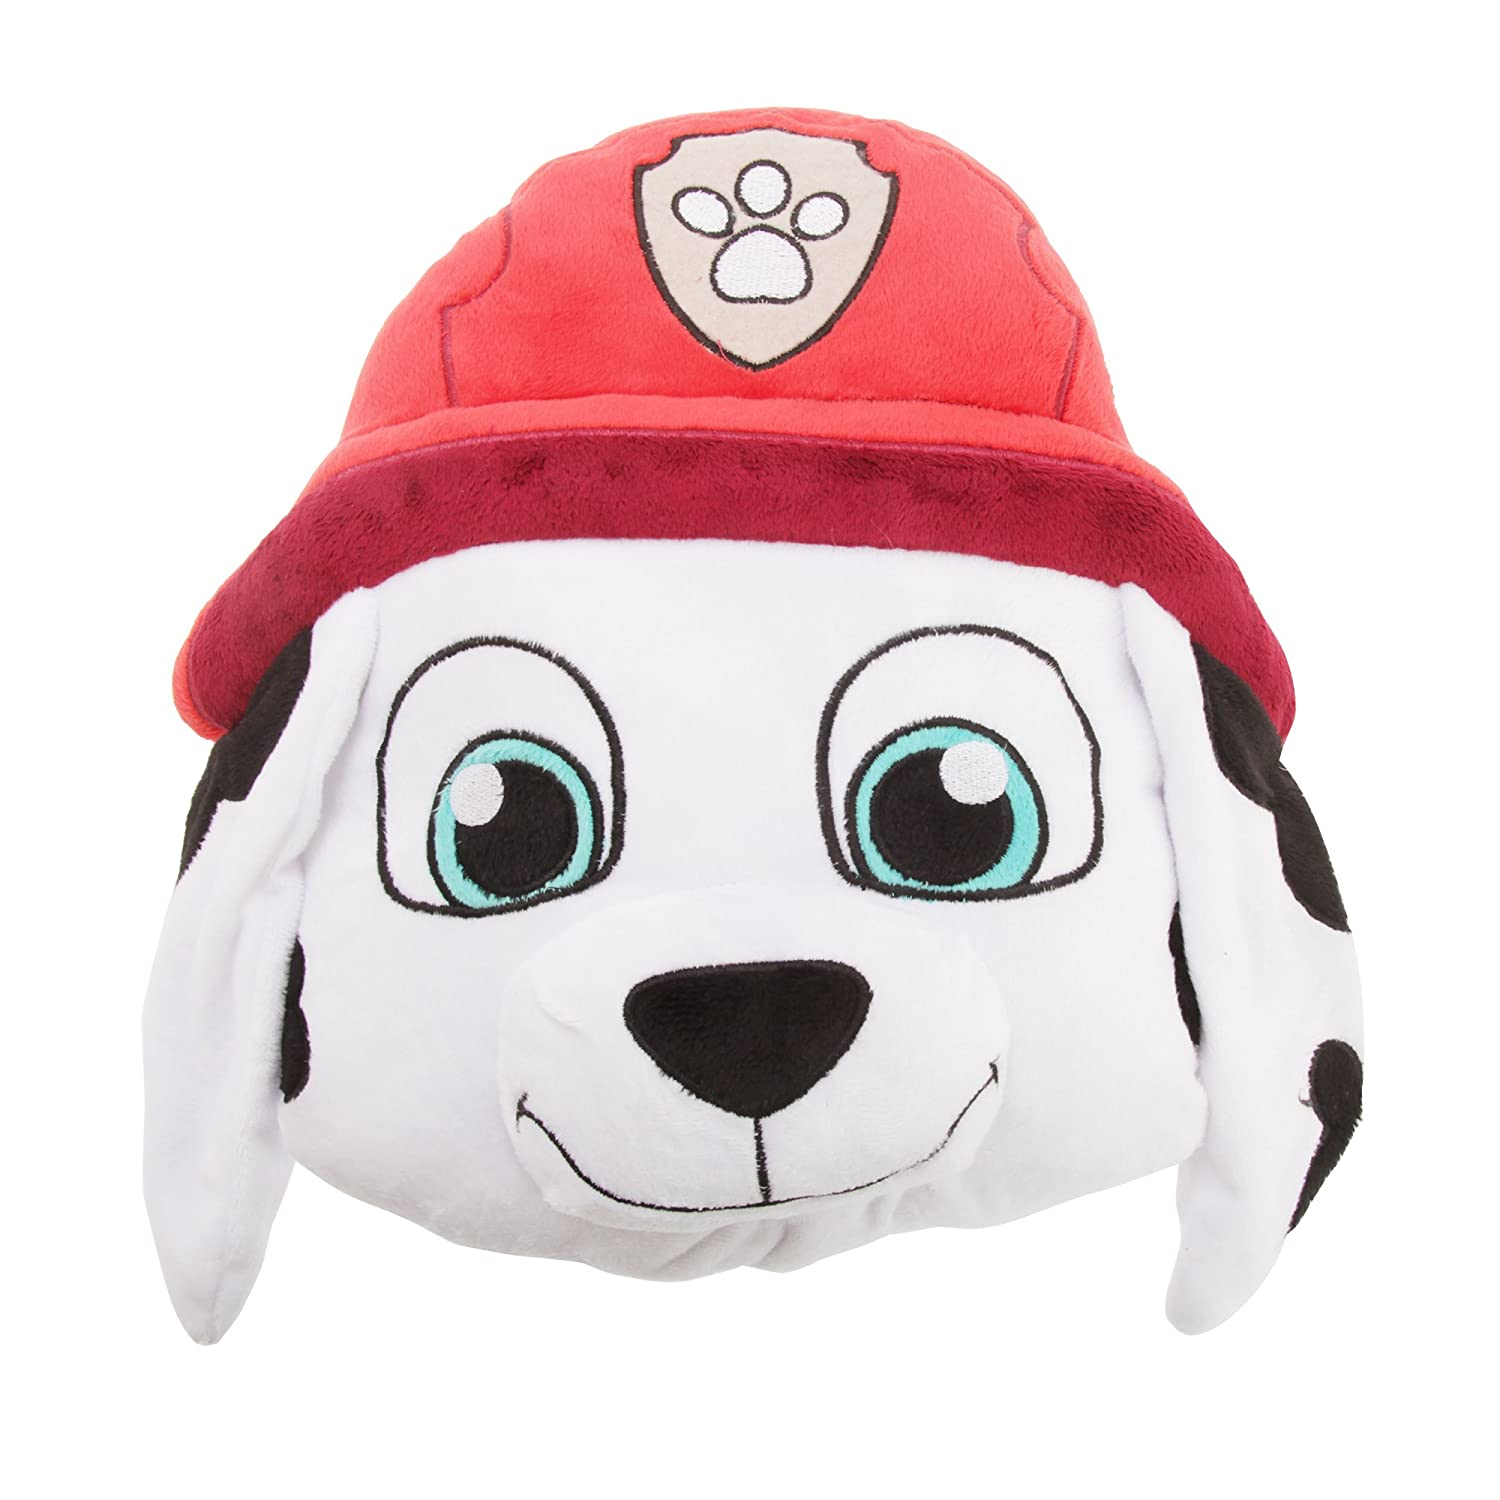 Paw Patrol Childrens/Kids Official Character Design Plush Cushion (One Size) (Marshall) UTMS558_1